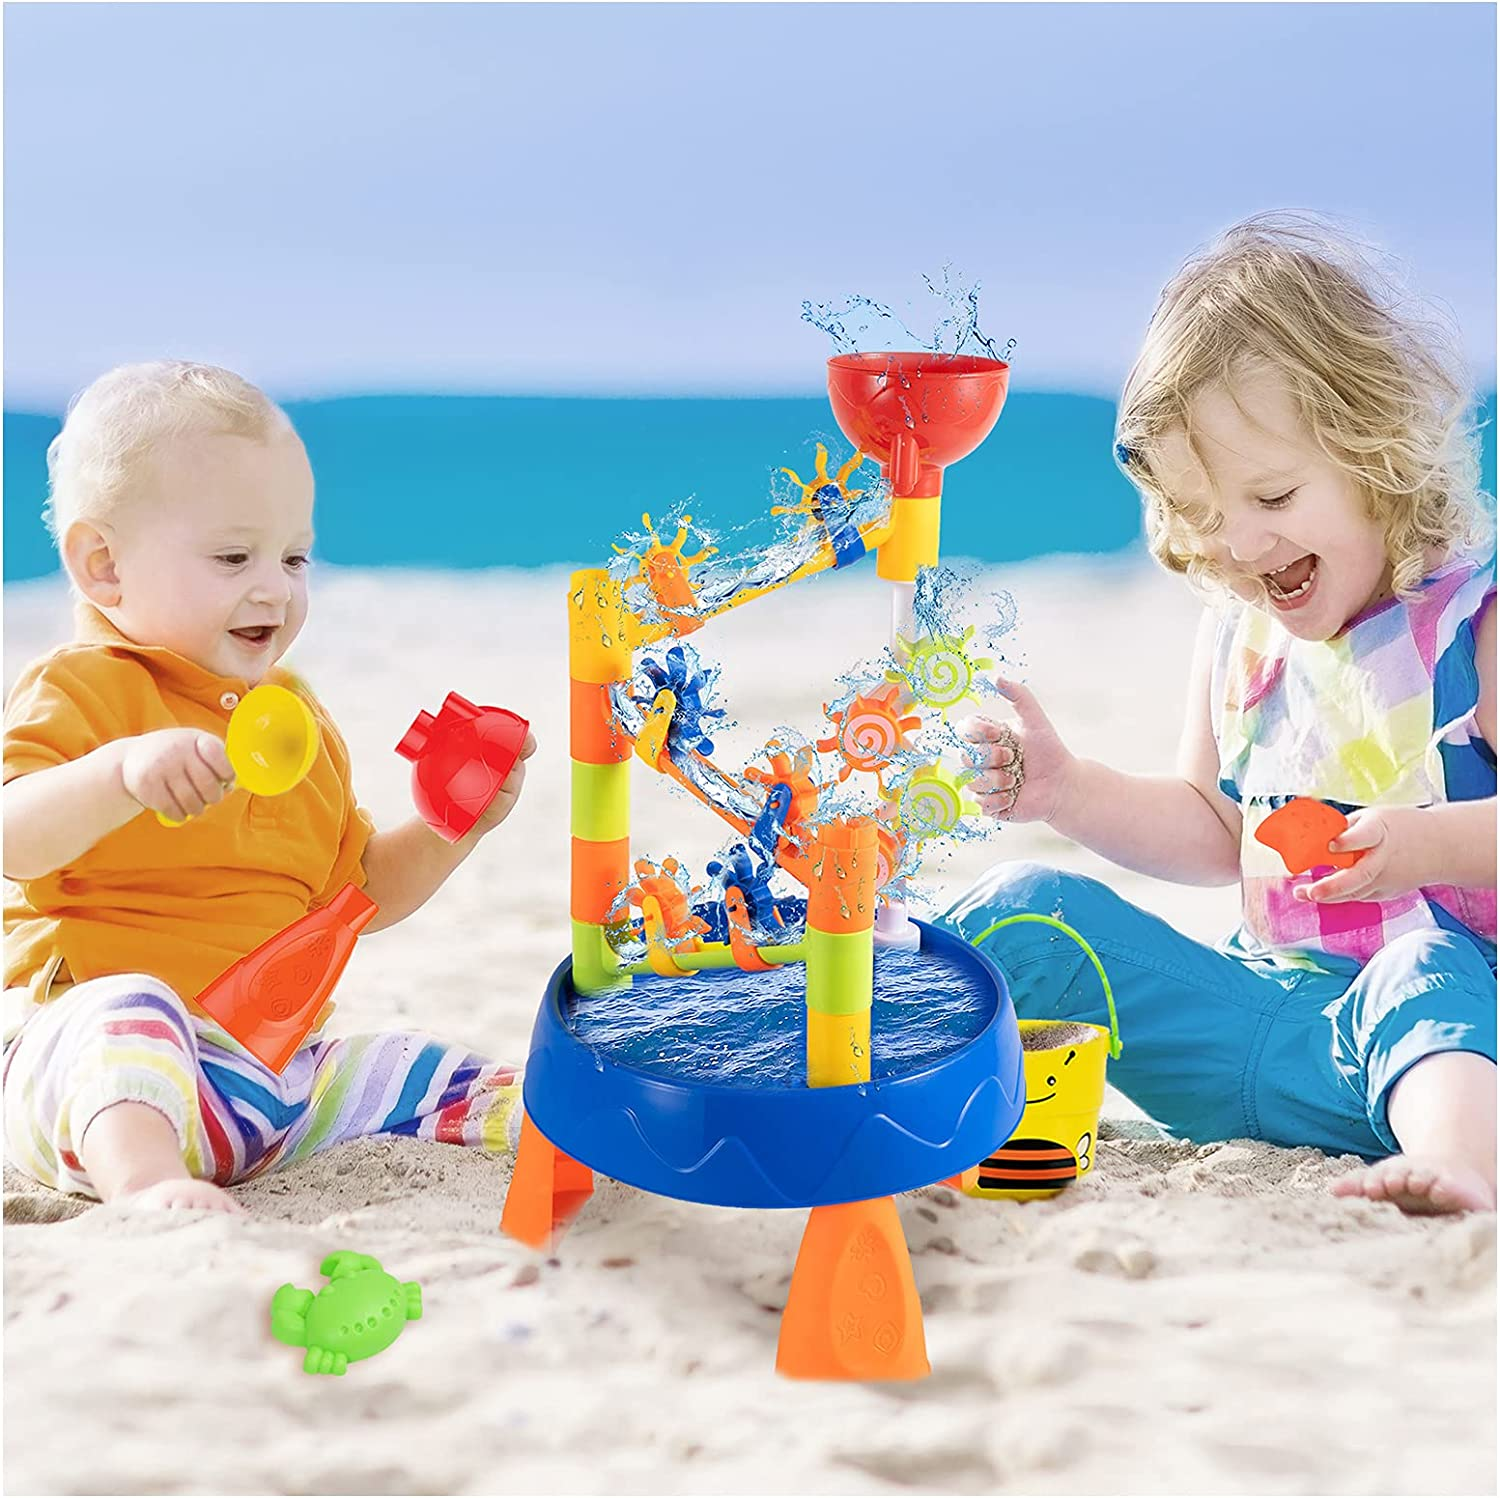 Starpony Firmament Water Table Ta Toddlers for Deluxe Sand Limited time for free shipping